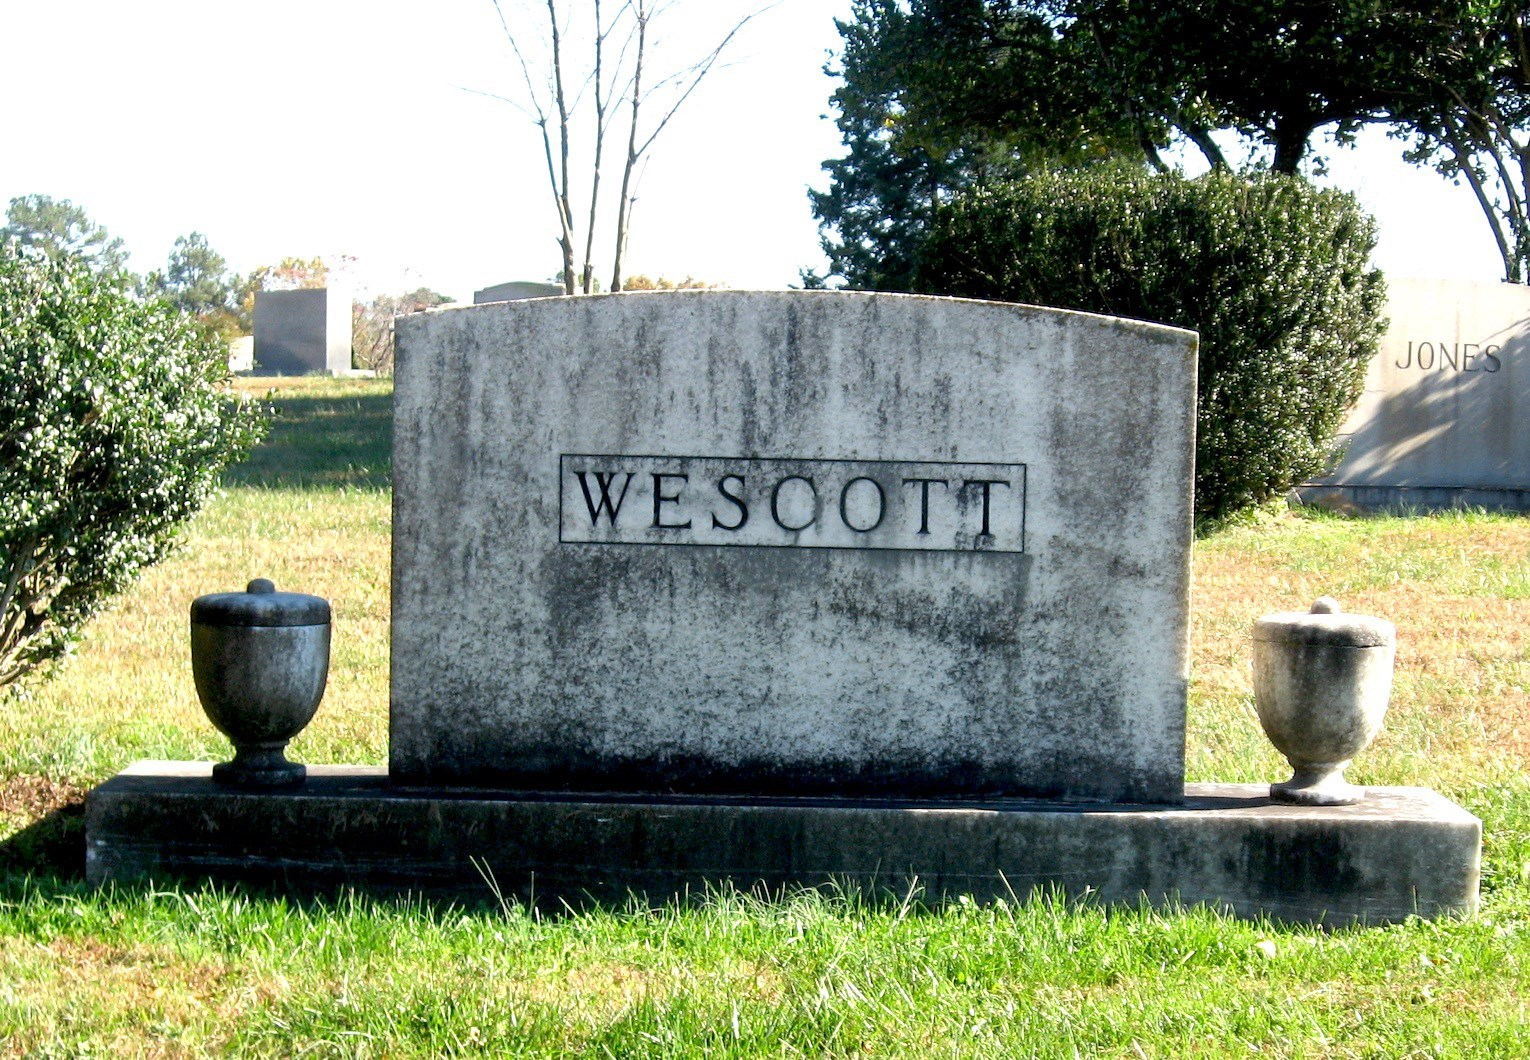 Wescott family plot